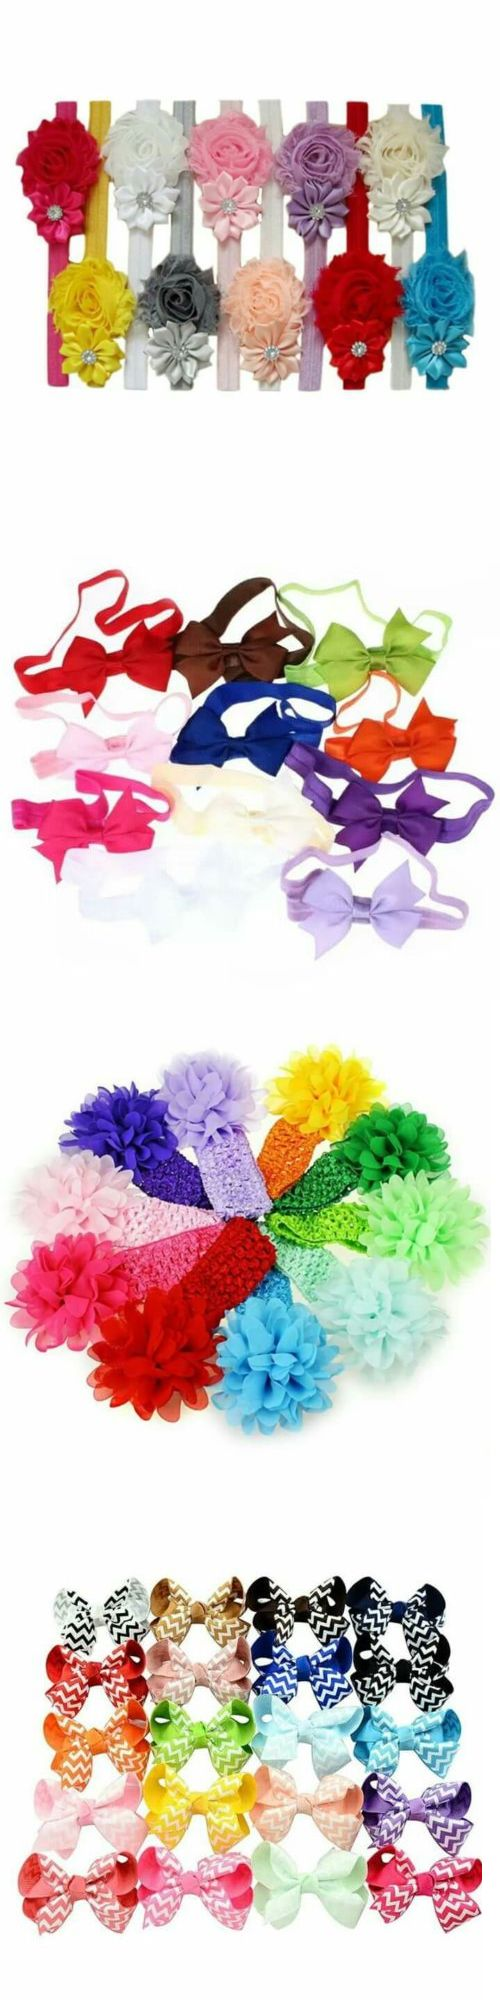 Hair Accessories 57920: 135 Pcs Hair Accessories, Headband And Hairbows Lot. Wholesale Hair Accessory. -> BUY IT NOW ONLY: $75 on eBay!